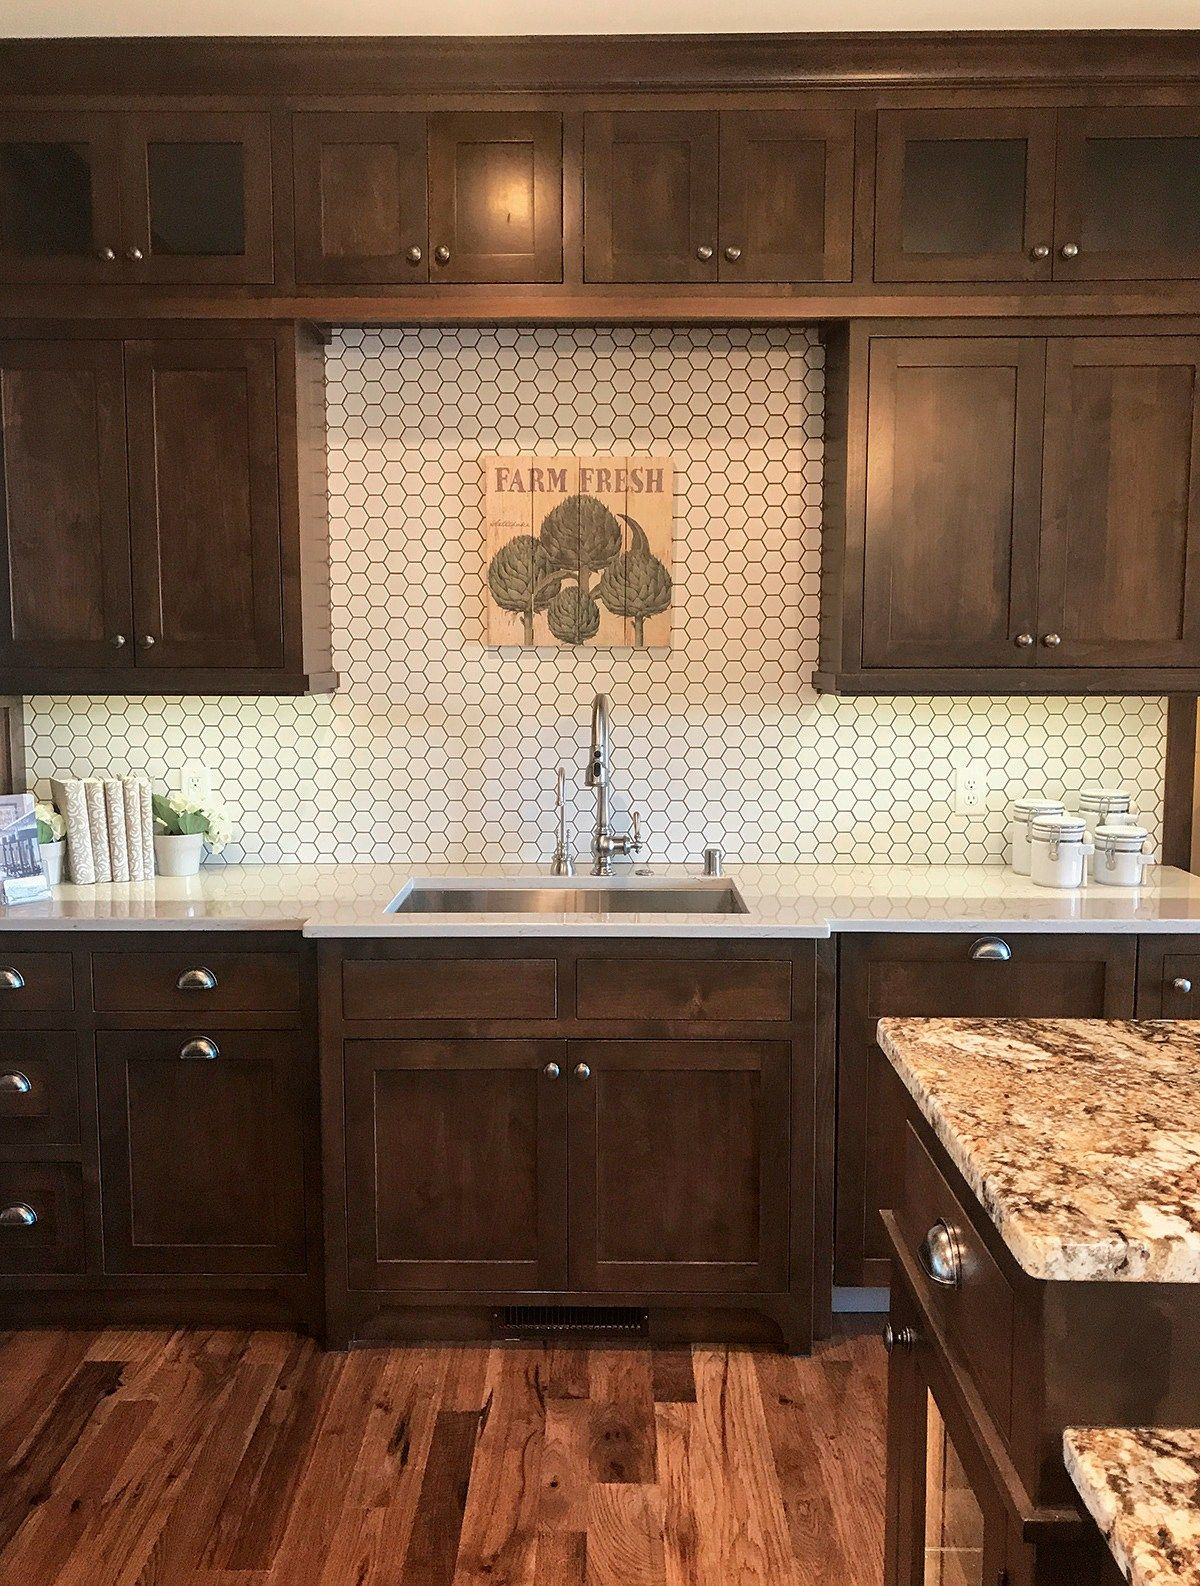 Backsplash Trends. Great Contrast In This Kitchen! Warm Brown Cabinets,  Rustic Wood Floors